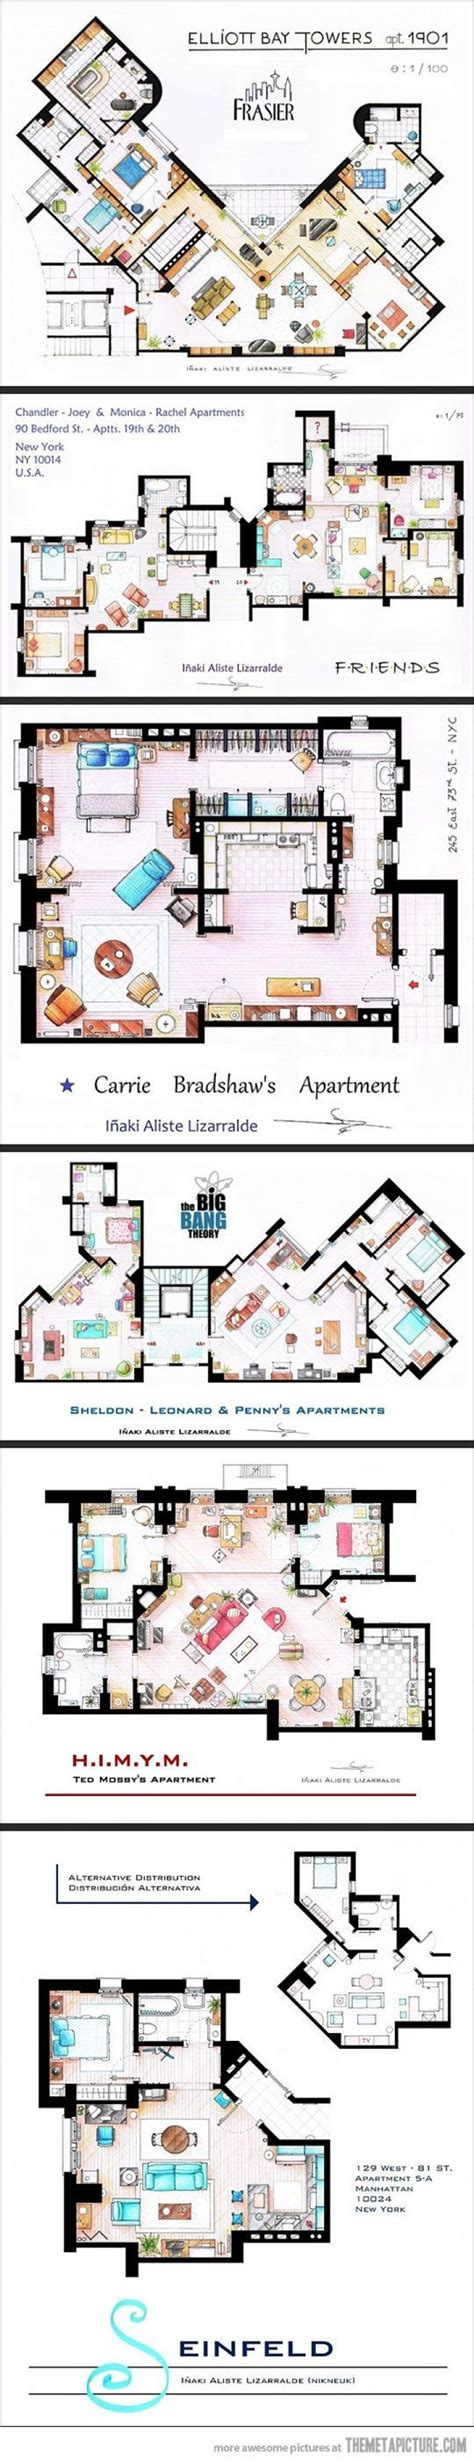 big bang theory floor plan floor plans from tv series the big bang theory f r i e n